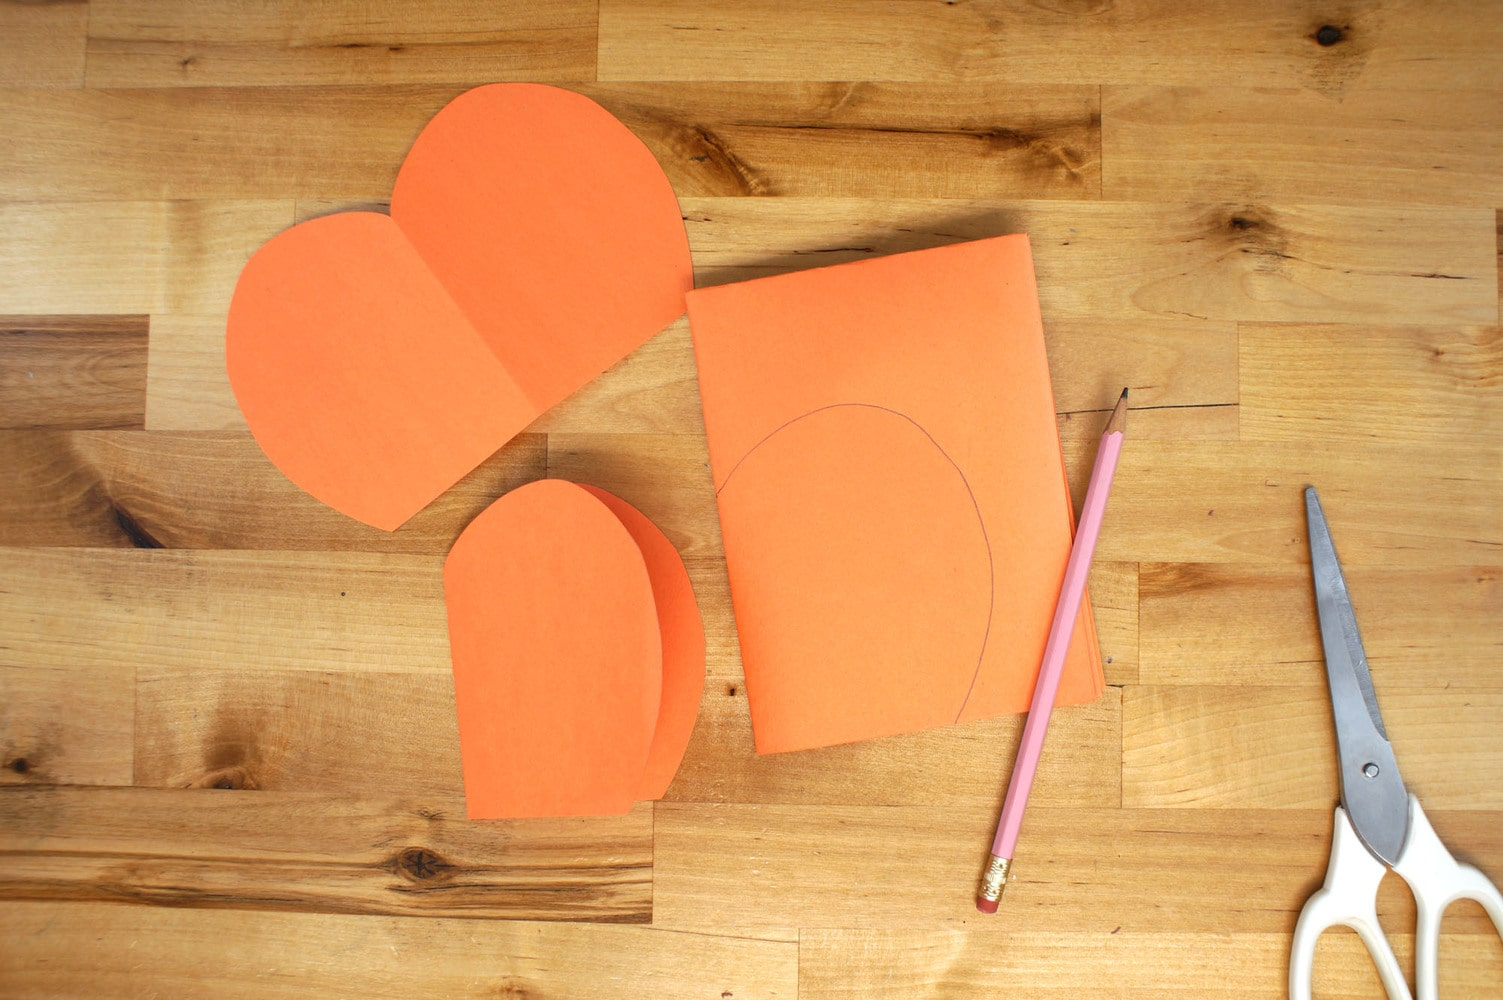 How to make a 3D pumpkin with sheets of orange paper, pencil and scissors